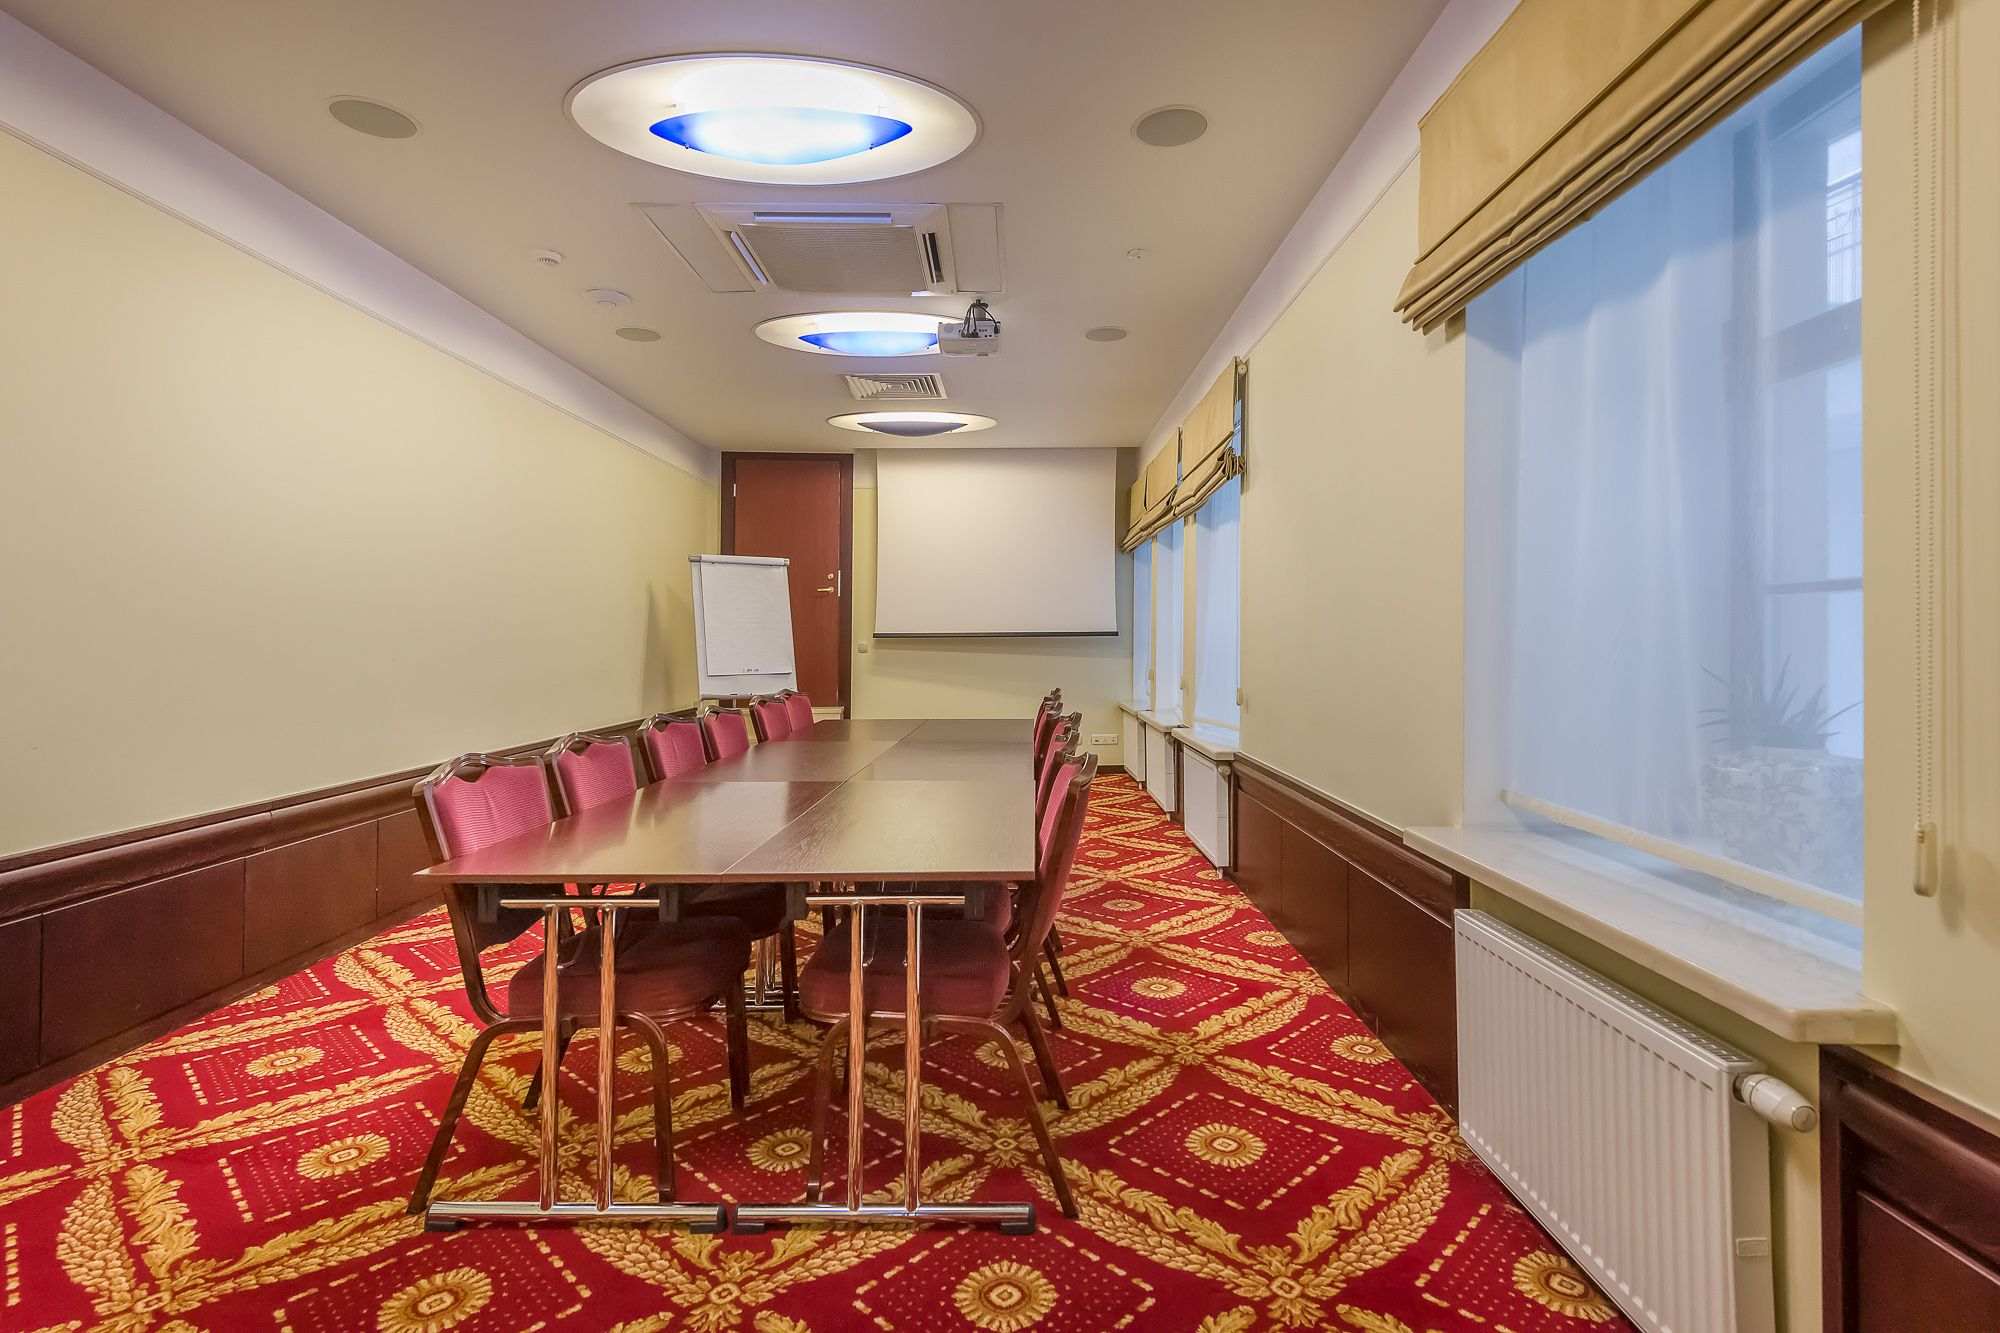 Artis Centrum Hotels Conference Room - Rigoletto